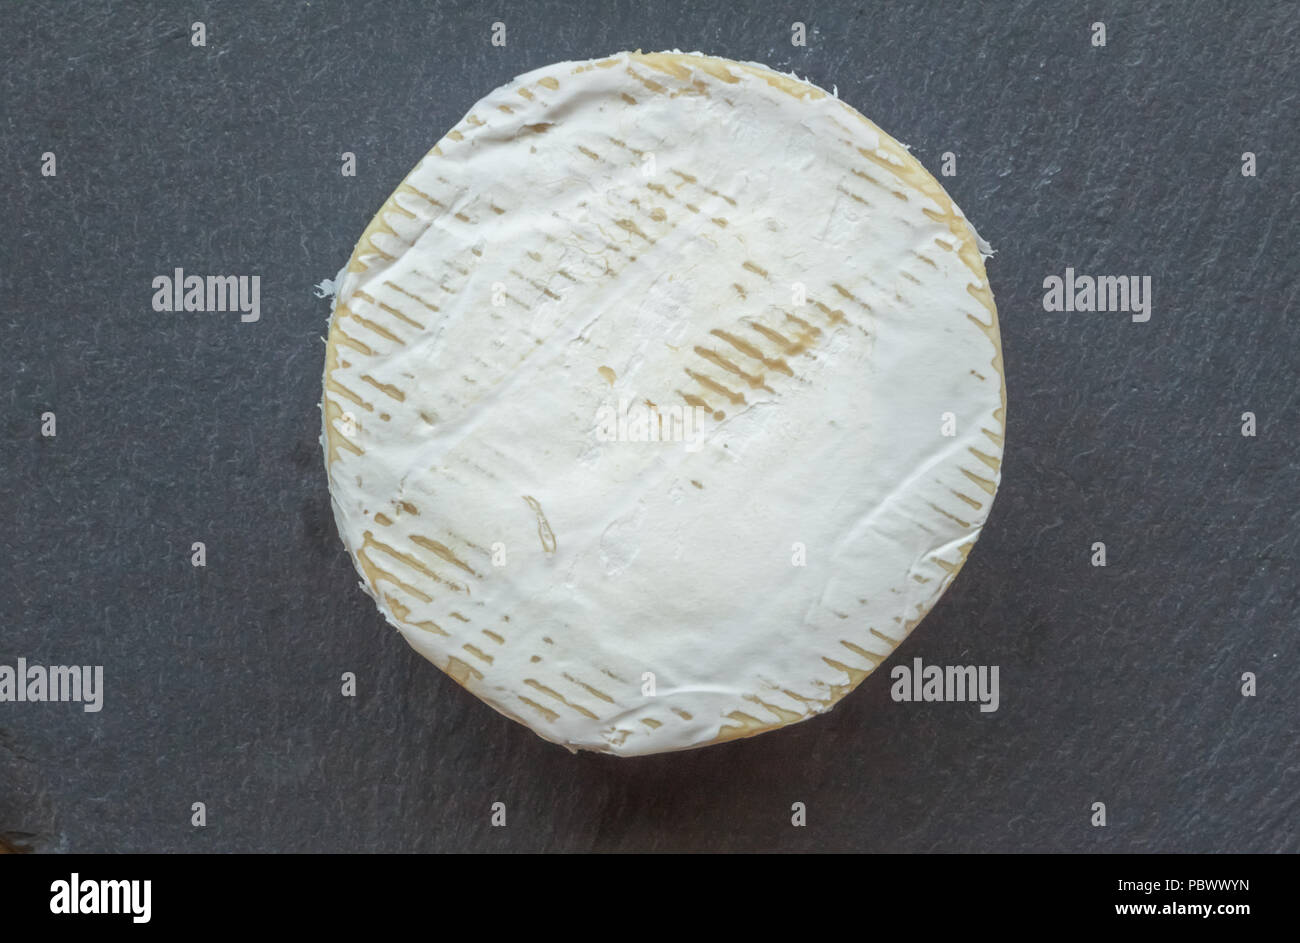 Camembert cheese isolated on black slate cheese board - Top view photo of whole uncut round - Stock Image